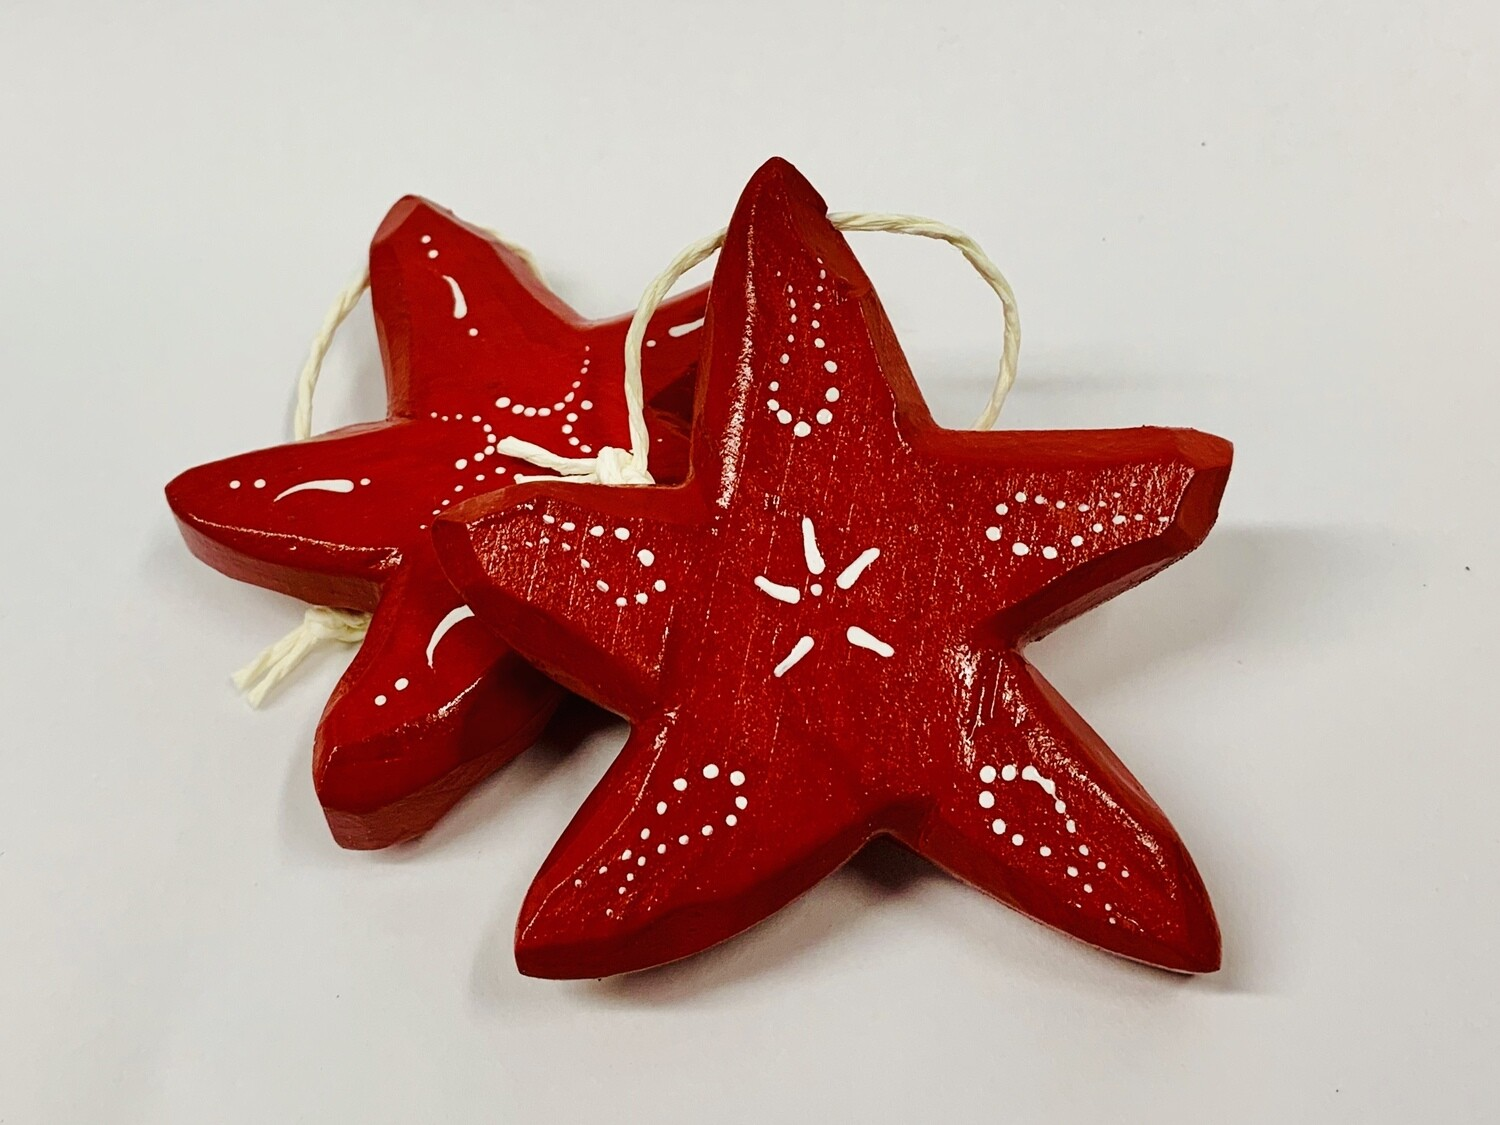 Red Sea Star Timberdoodle